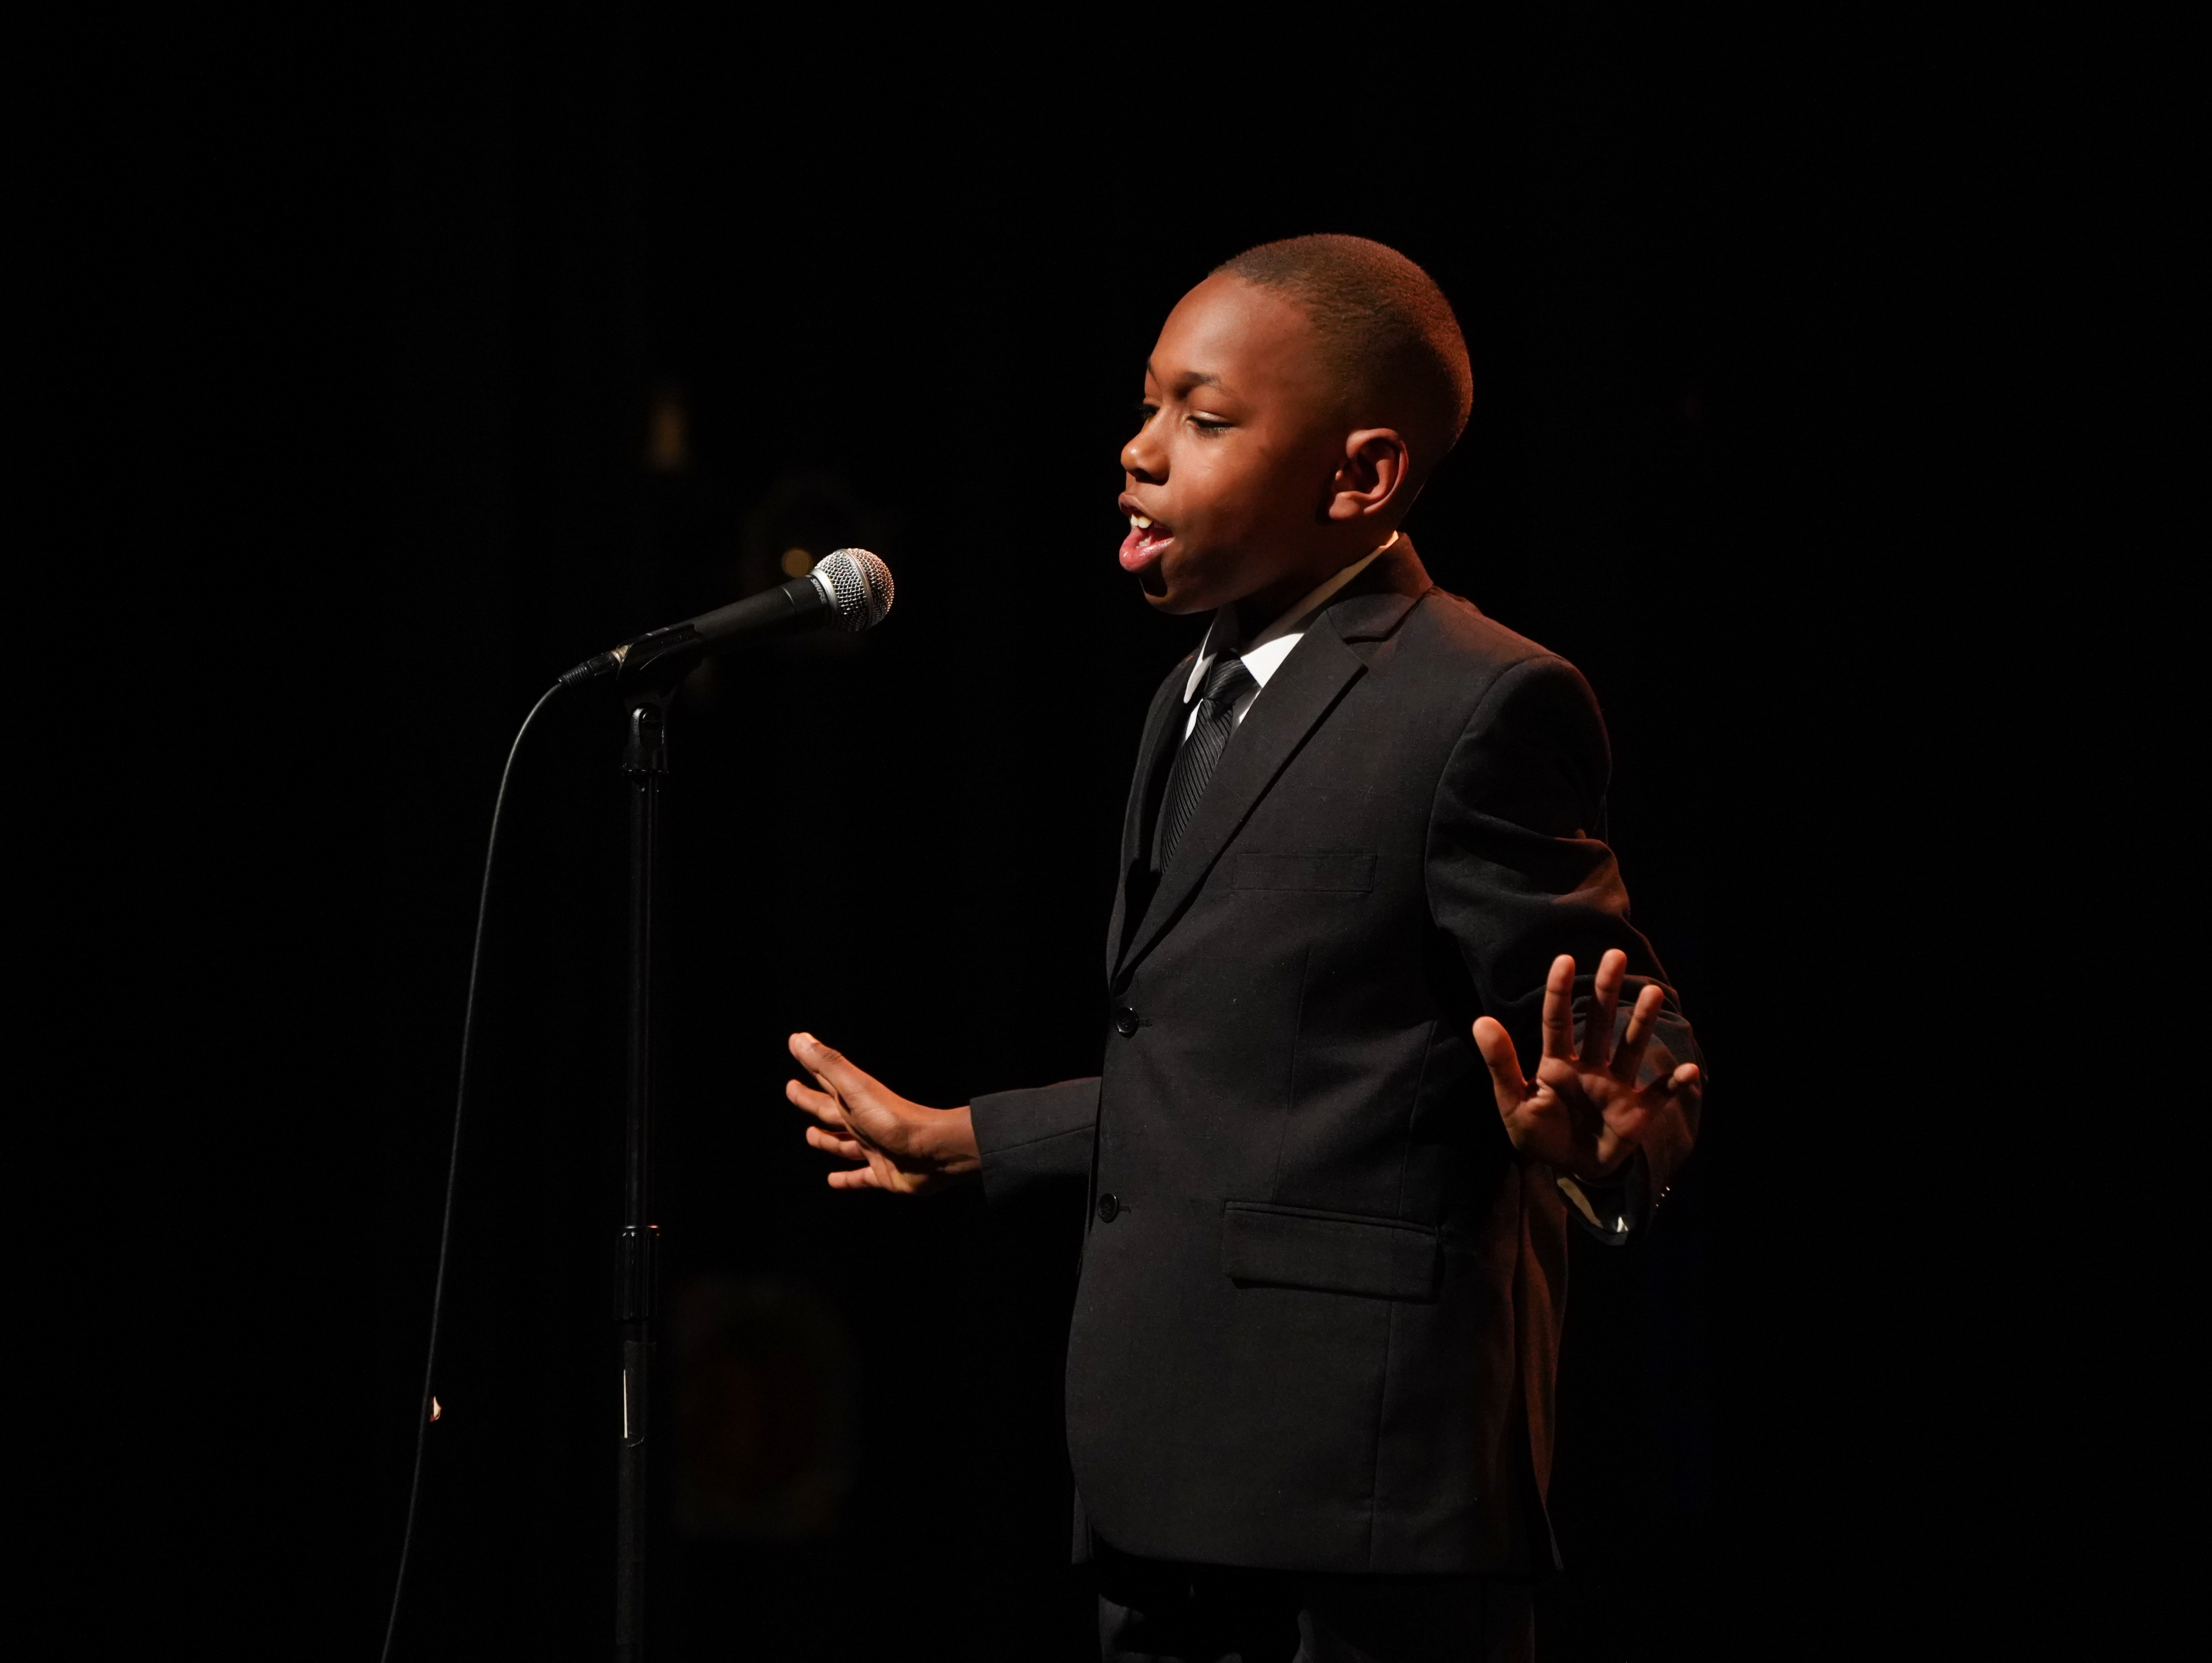 Gregory Payton, 9, delivers a tribute to the Martin Luther King, Jr. speech known as  I've Been to the Mountaintop  (1968) at the 2019 Dr. Martin Luther King, Jr. Oratorical Festival in Oakland, Calif.